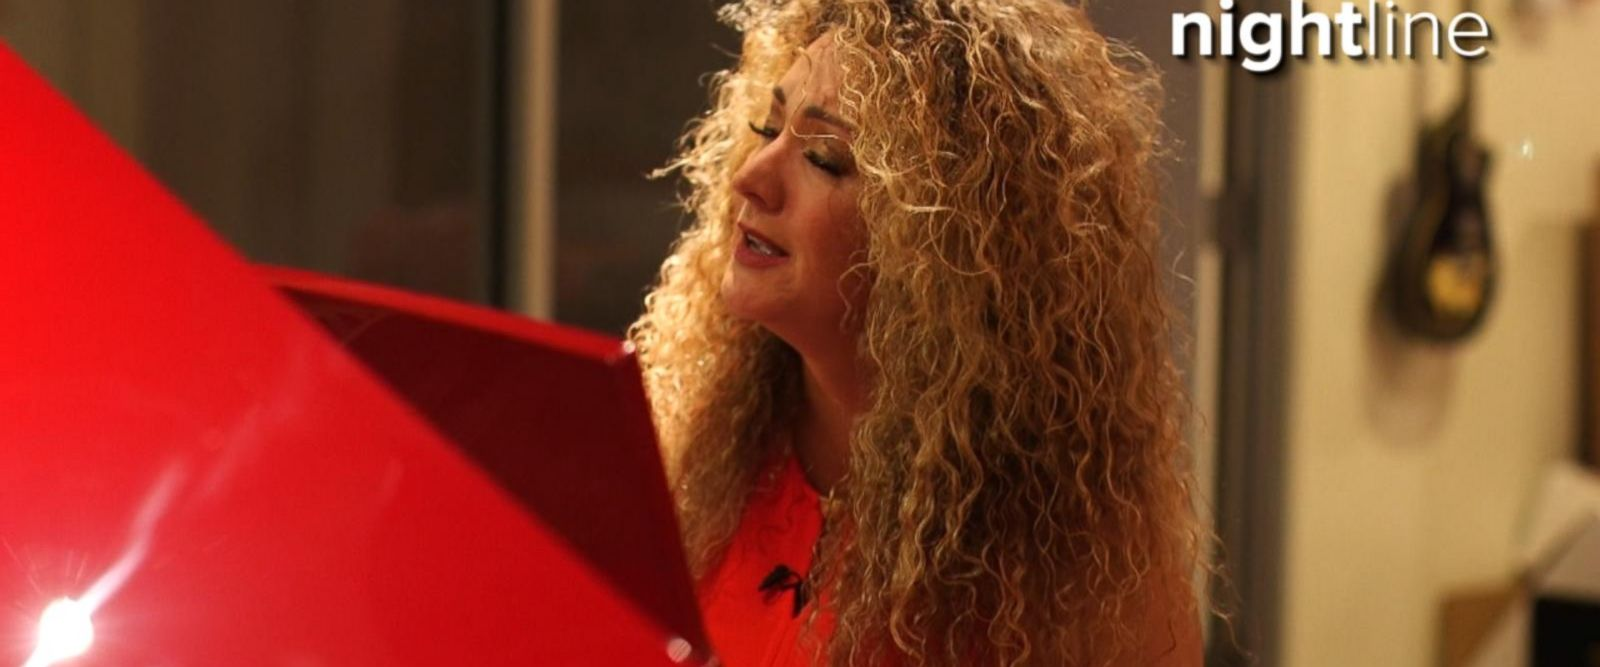 VIDEO: 'Despacito' co-writer Erika Ender sings unplugged version of hit song